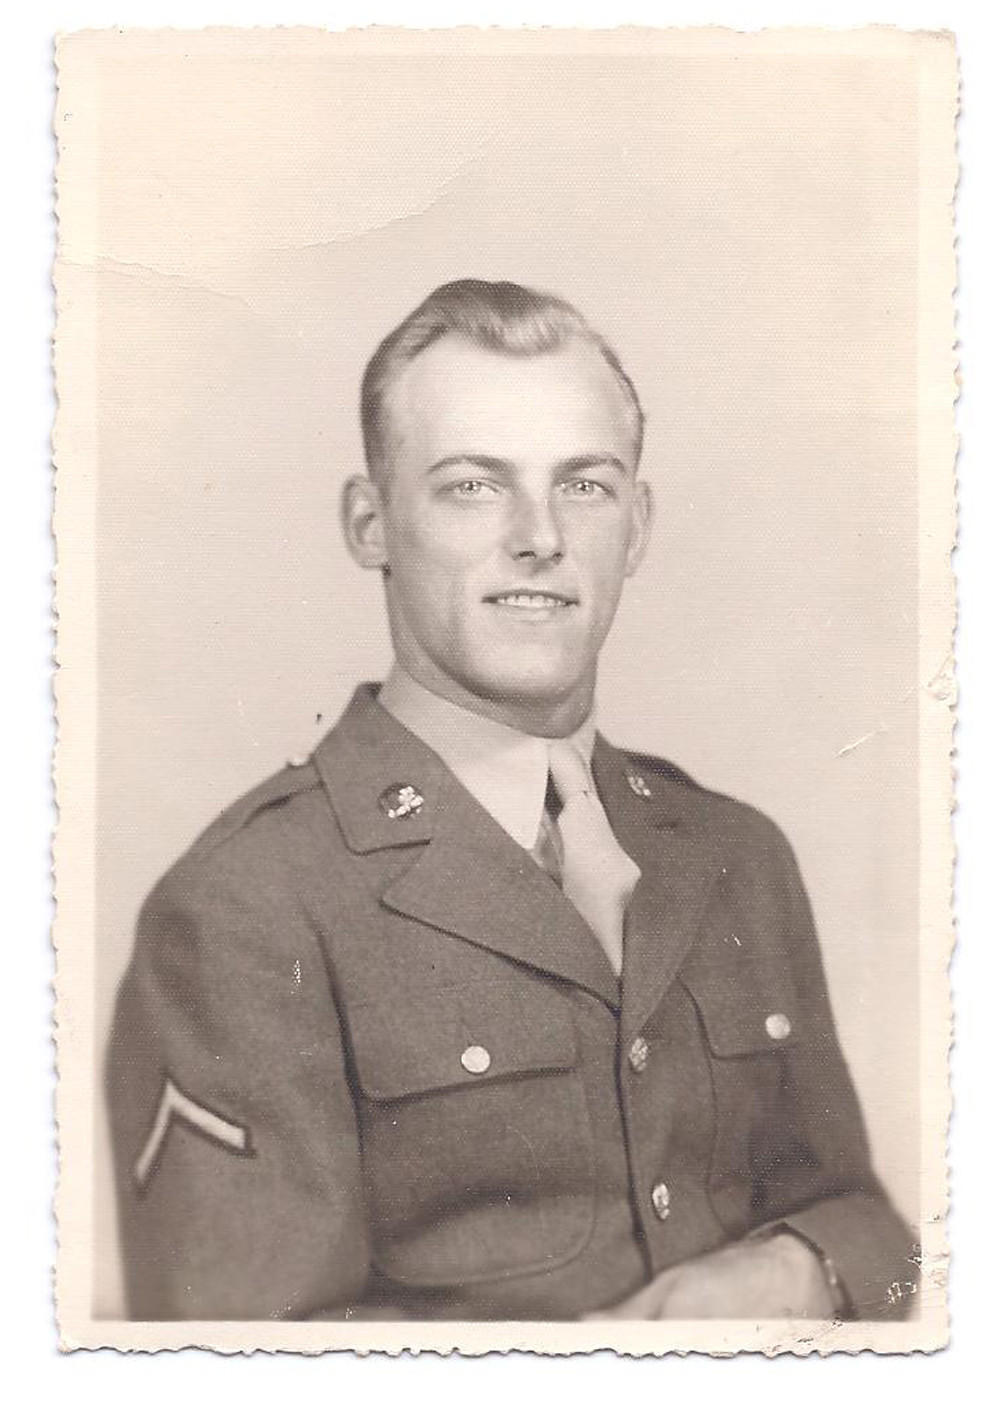 John Wrana in his Army Air Corp uniform. Family photo from Attorney Nick Grapsas.